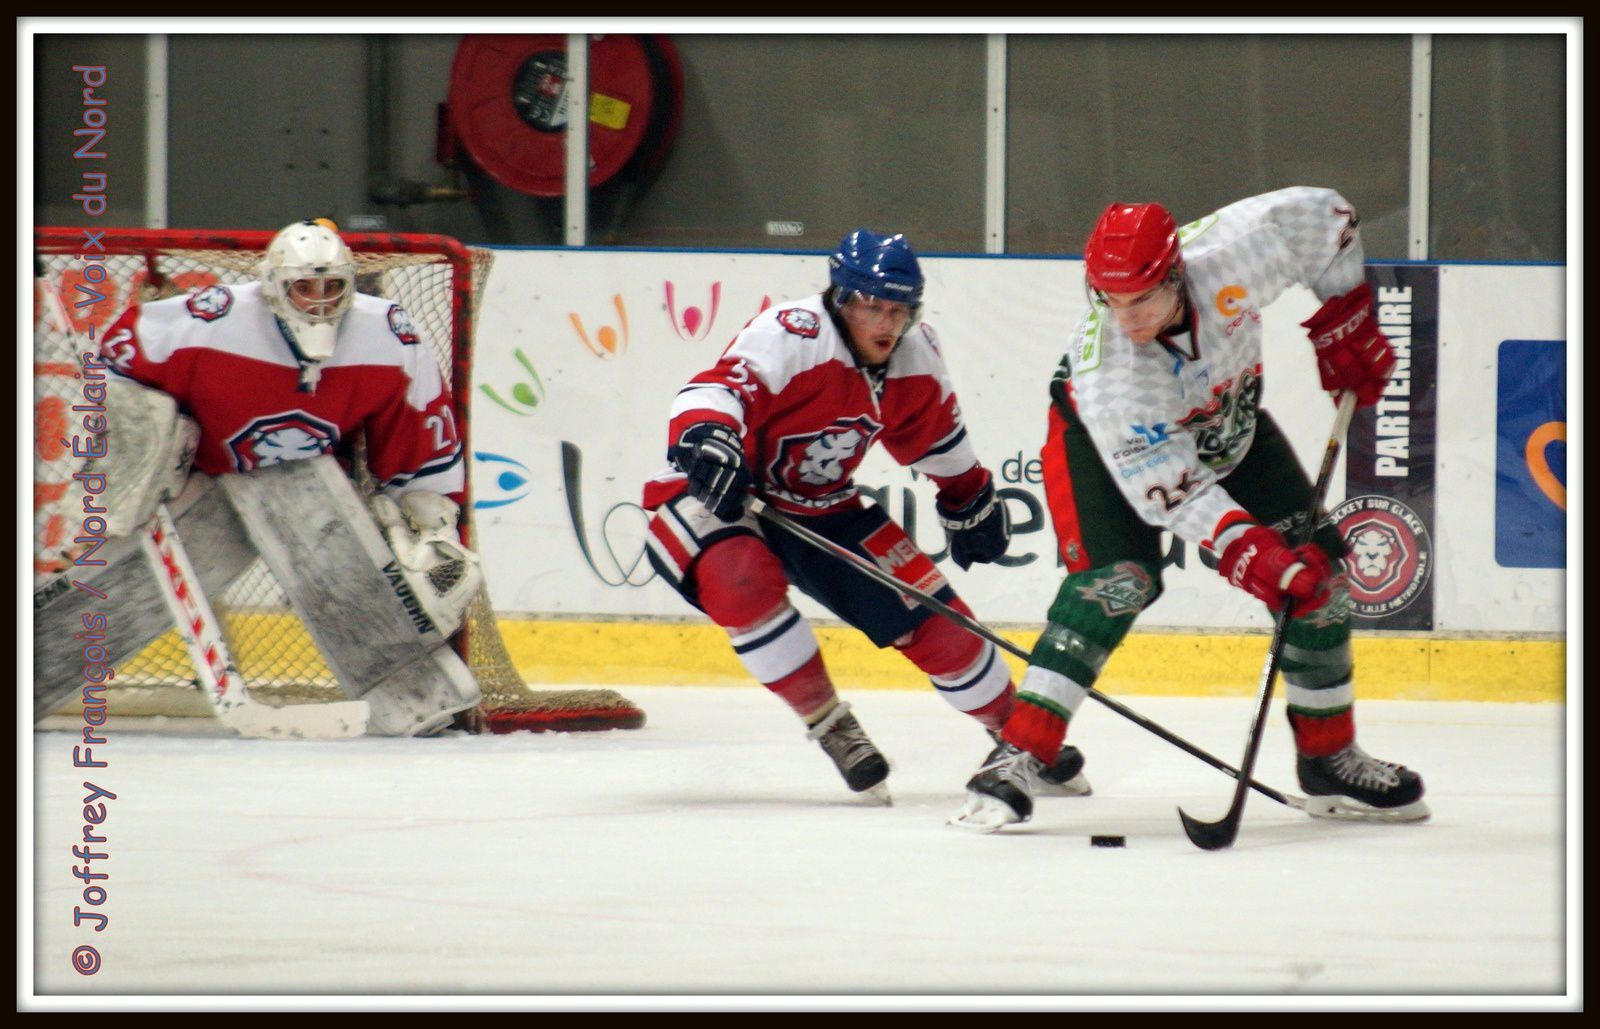 03.10.15 Hockey Lions-Cergy + TT Leers-Chalons